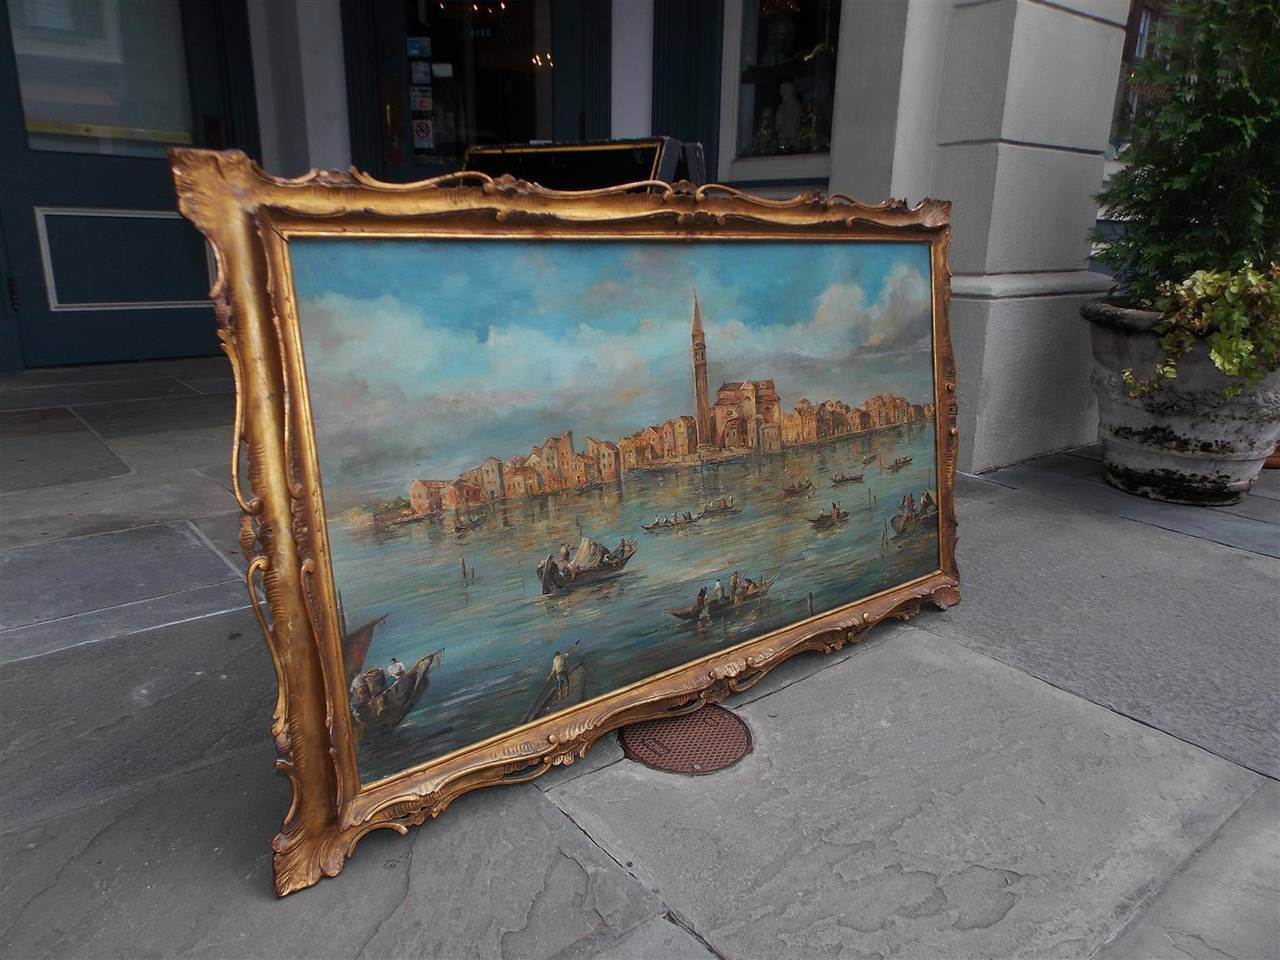 Venetian oil on board painting of the Island of Burano off the coast of Venice in original gilt floral carved wood frame.  Signed Prof. Mario Cora in lower right corner.  Paper label with signature on back as well.  18th Century